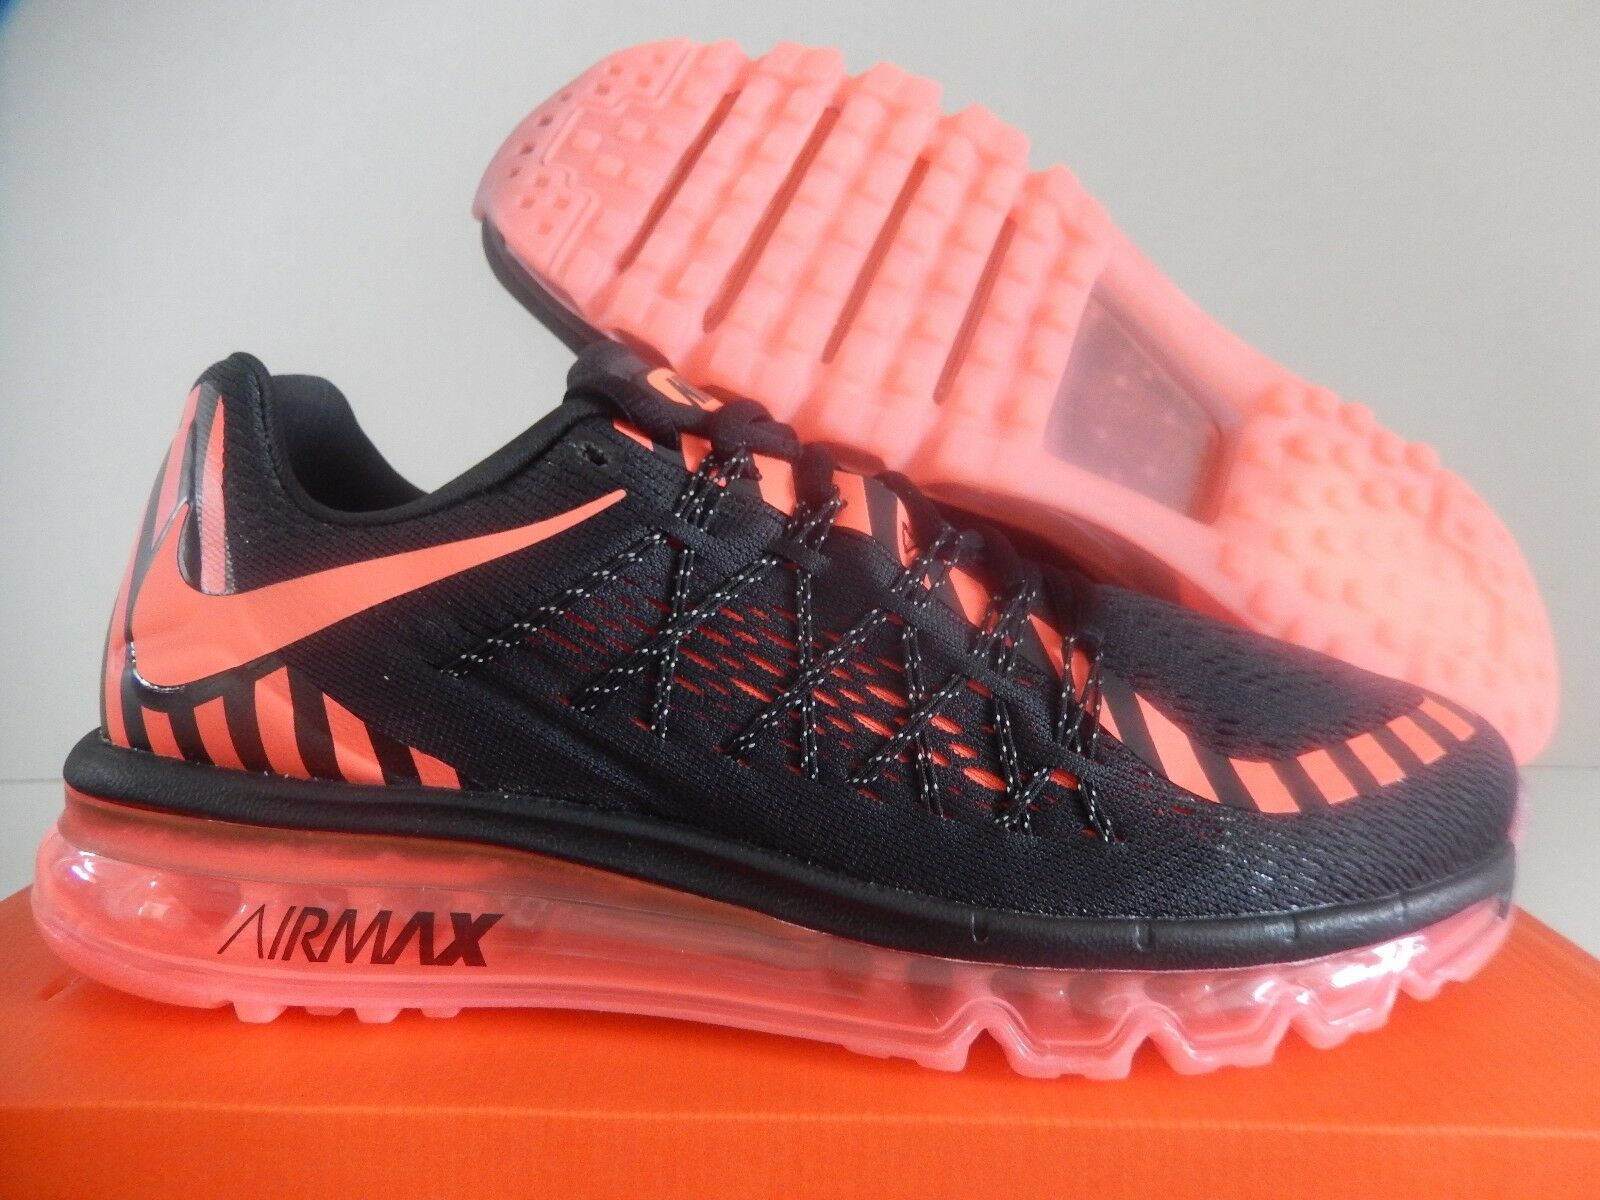 WMNS NIKE AIR MAX 2015 NR BLACK-HOT LAVA-DARK GREY GREY GREY SZ 10 6f7ae2